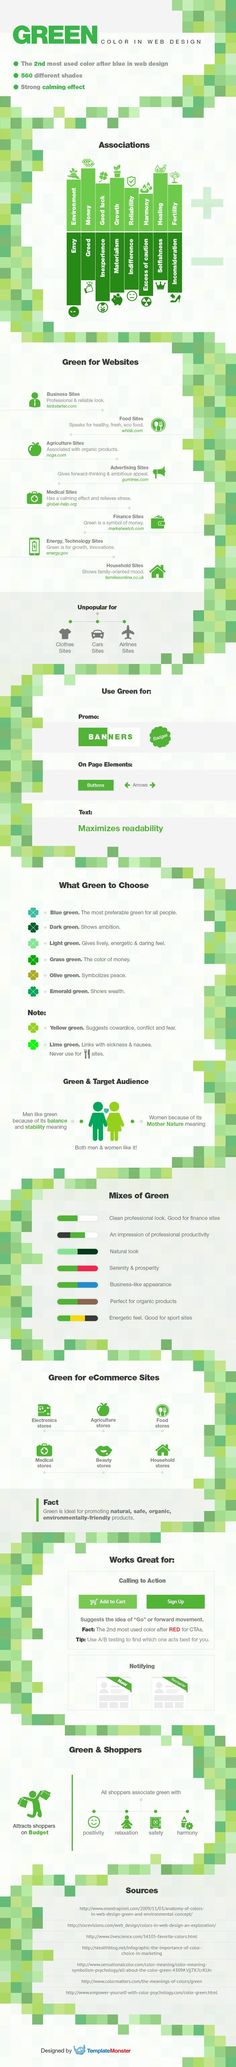 Green Color in Web Design [Infographics]